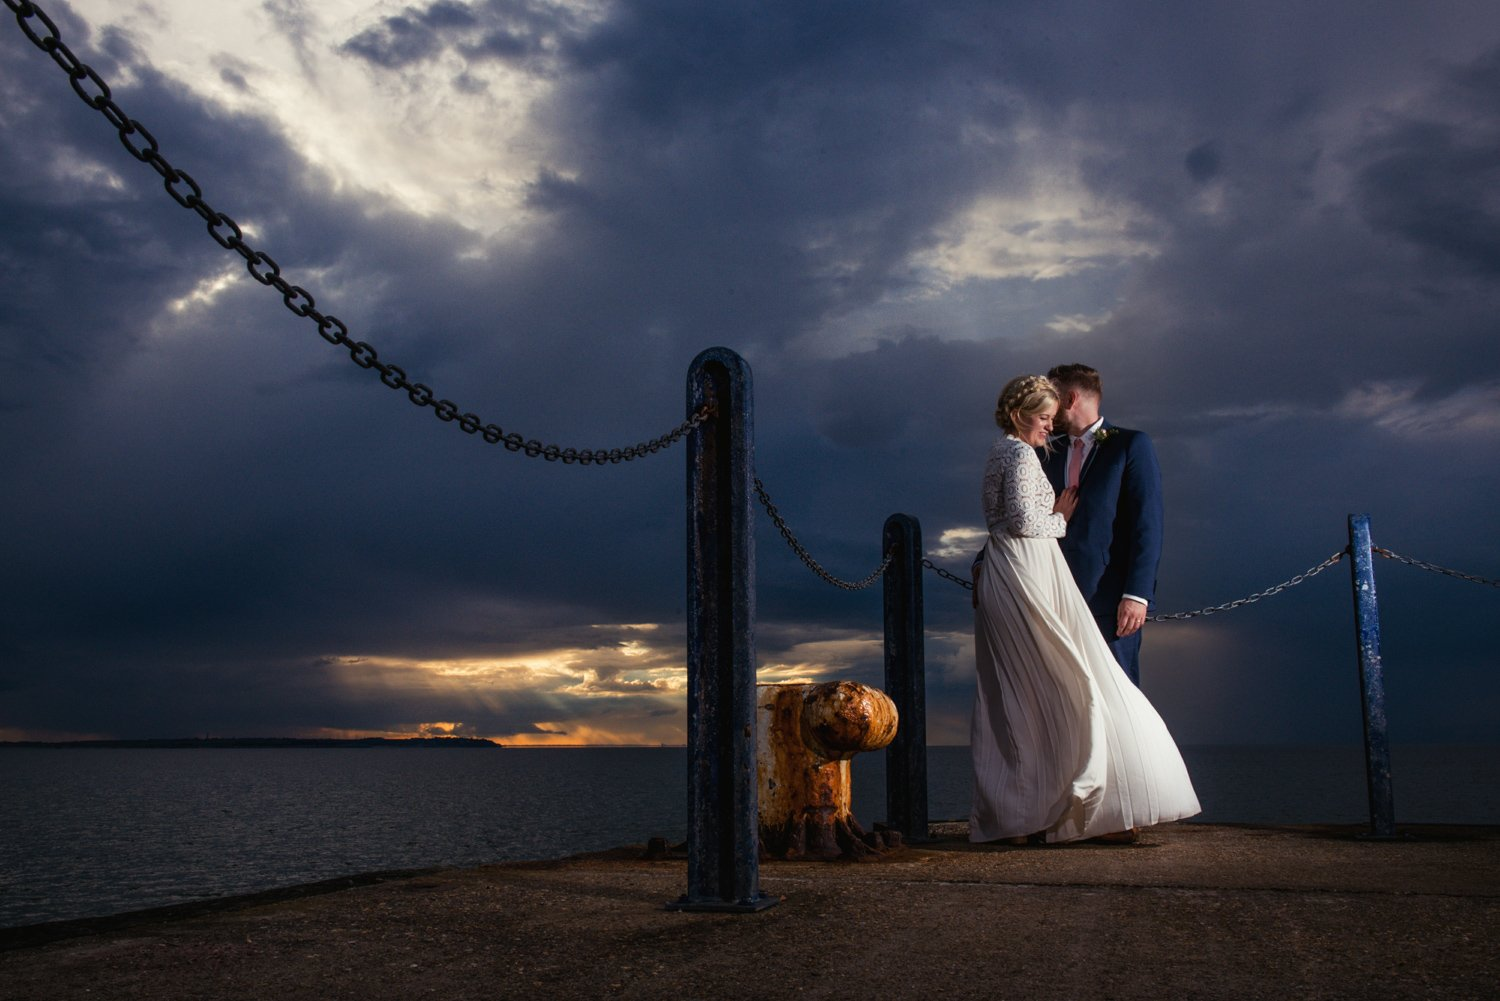 Creative award winning wedding photographer Babb Photo